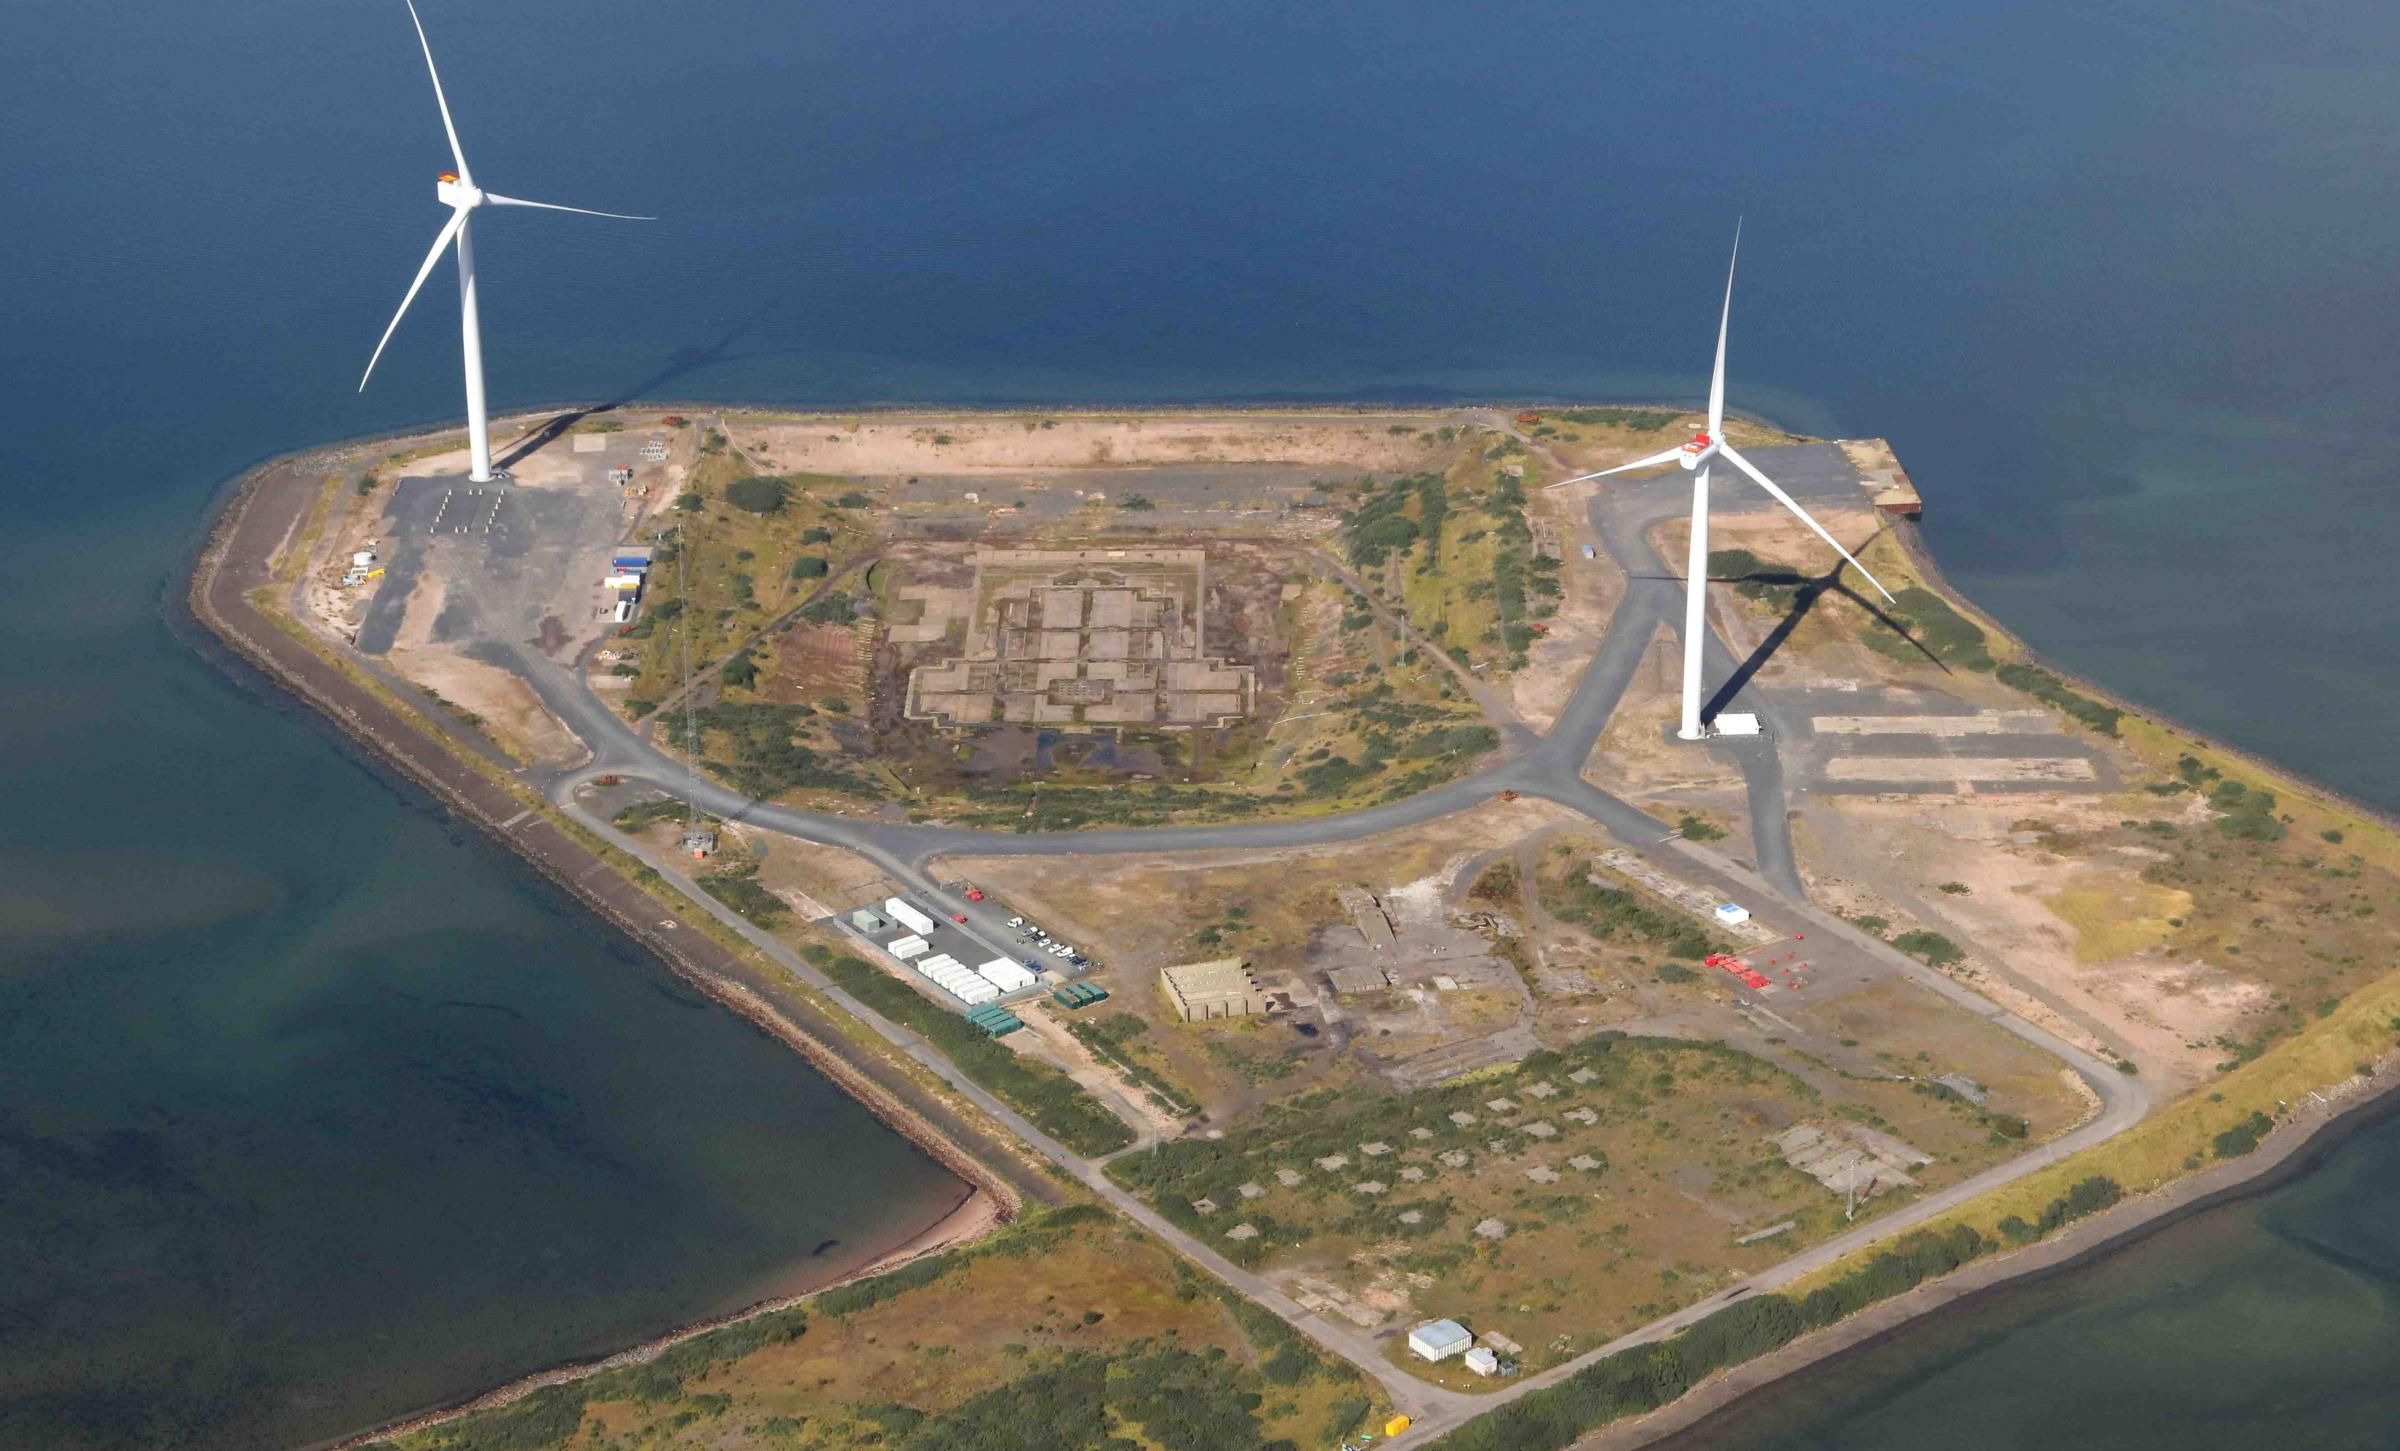 The Hunterston site will deliver affordable and sustainable on-site power